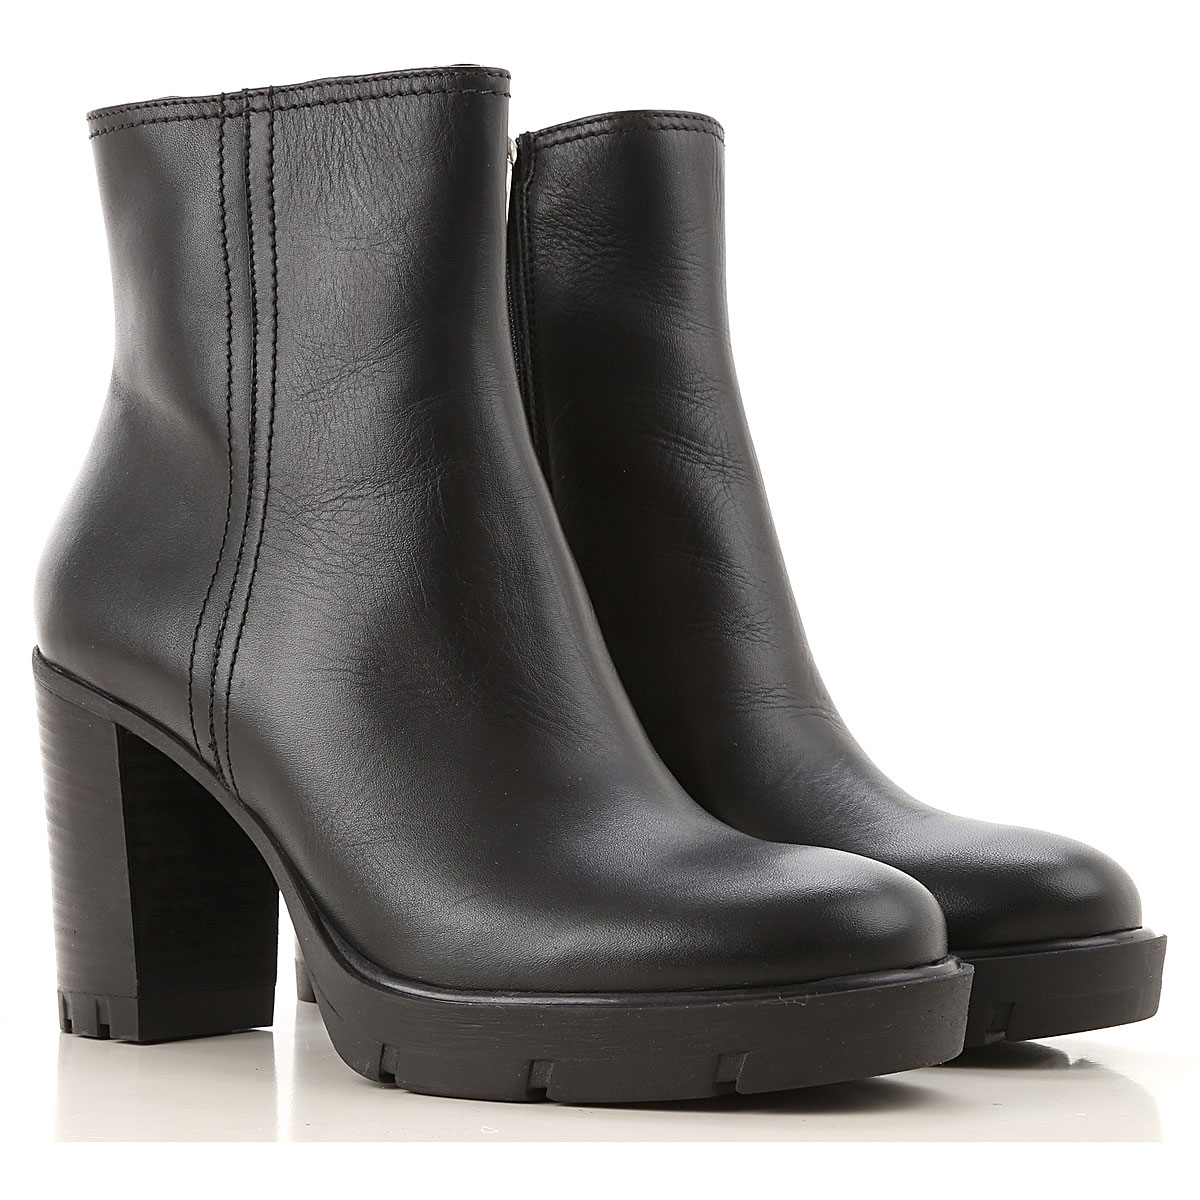 Janet & Janet Boots for Women, Booties On Sale, Black, Leather, 2019, 10 5 6 7 8 9